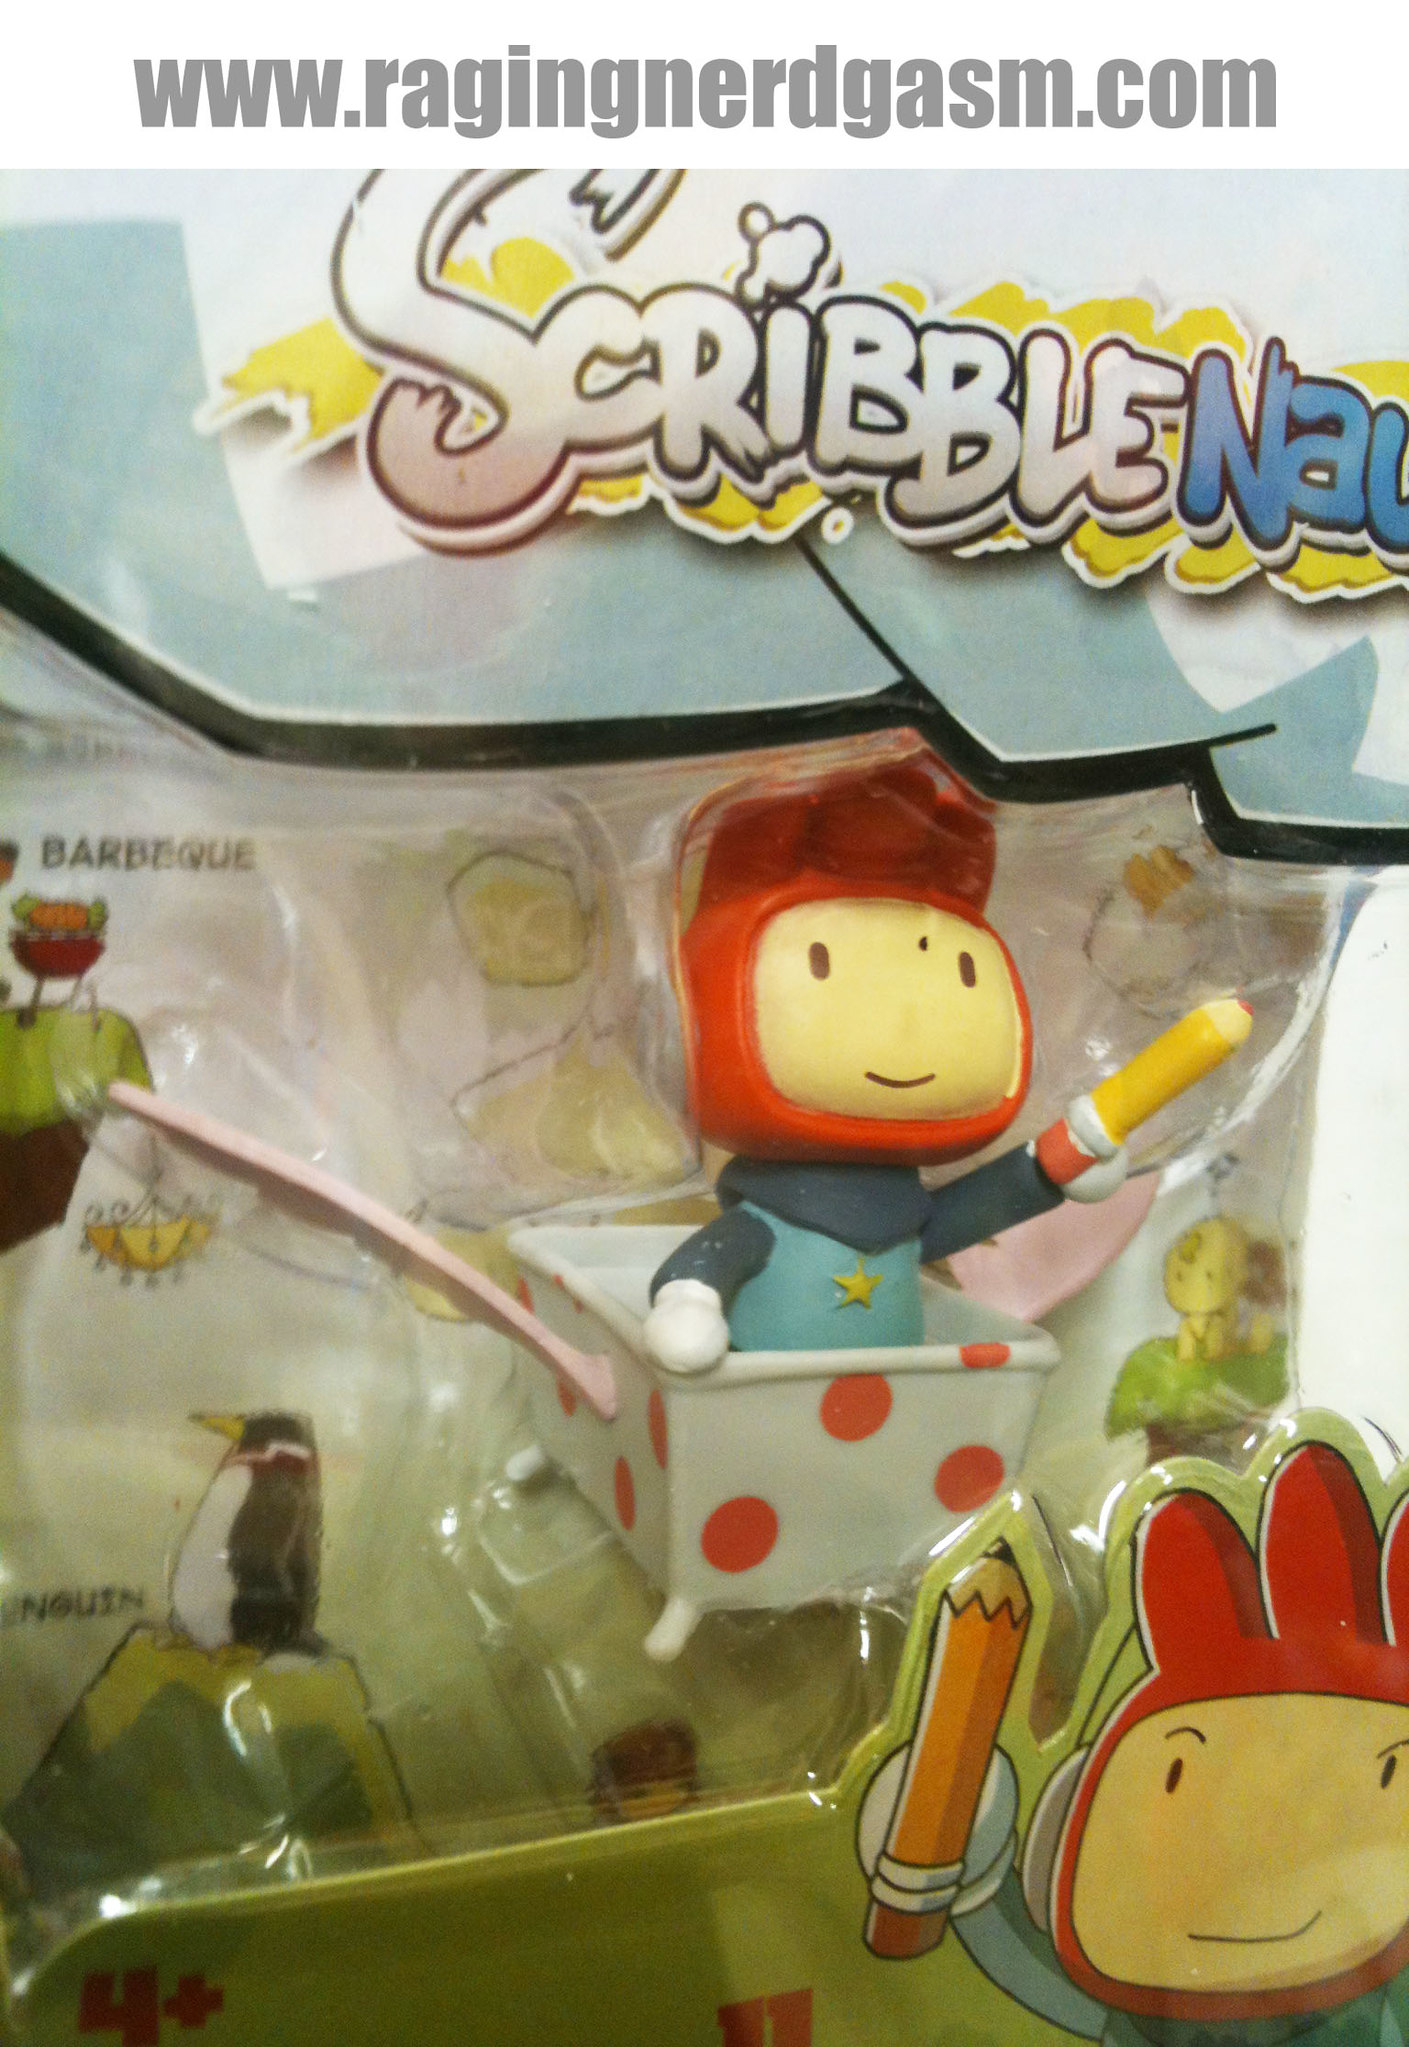 ScribbleNauts by Jazwares Maxwell Collectible Figure 007